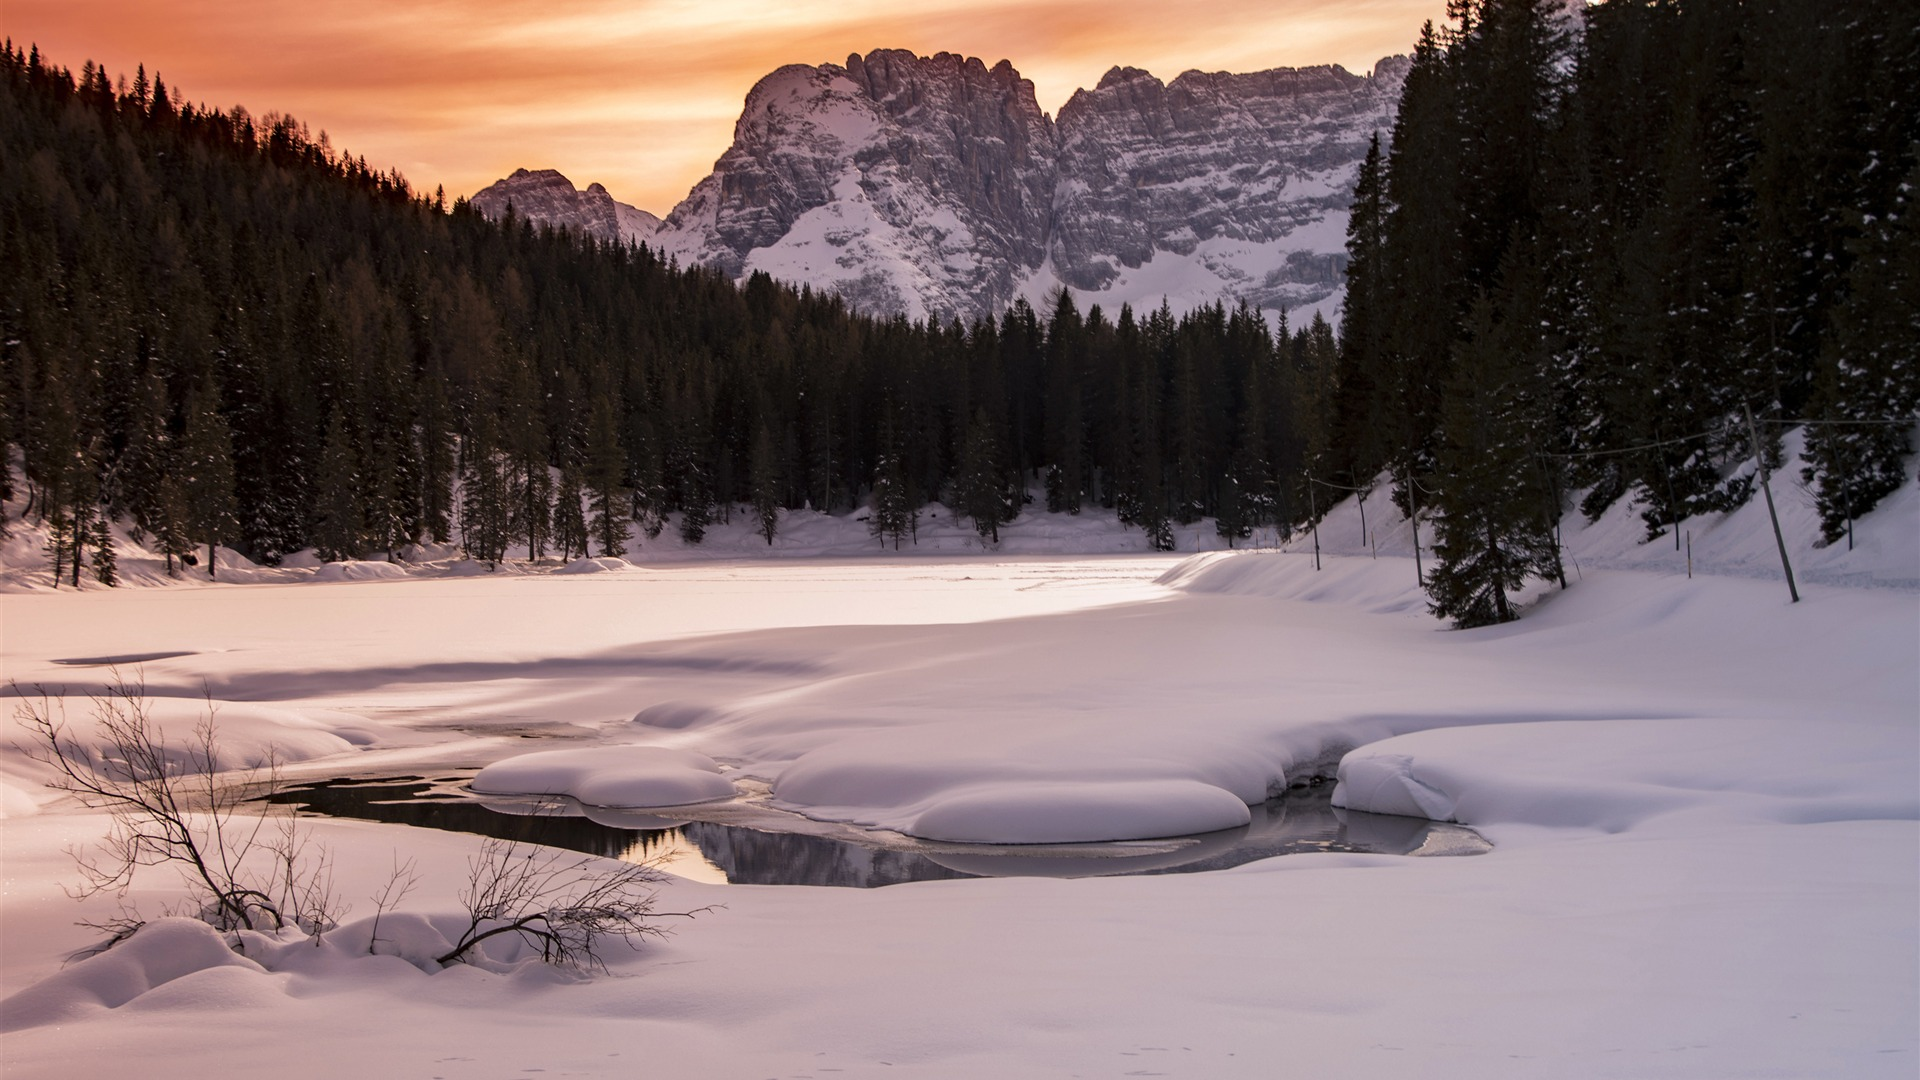 Winter jungle Alpine ice snow sunset - 1920x1080 wallpaper download